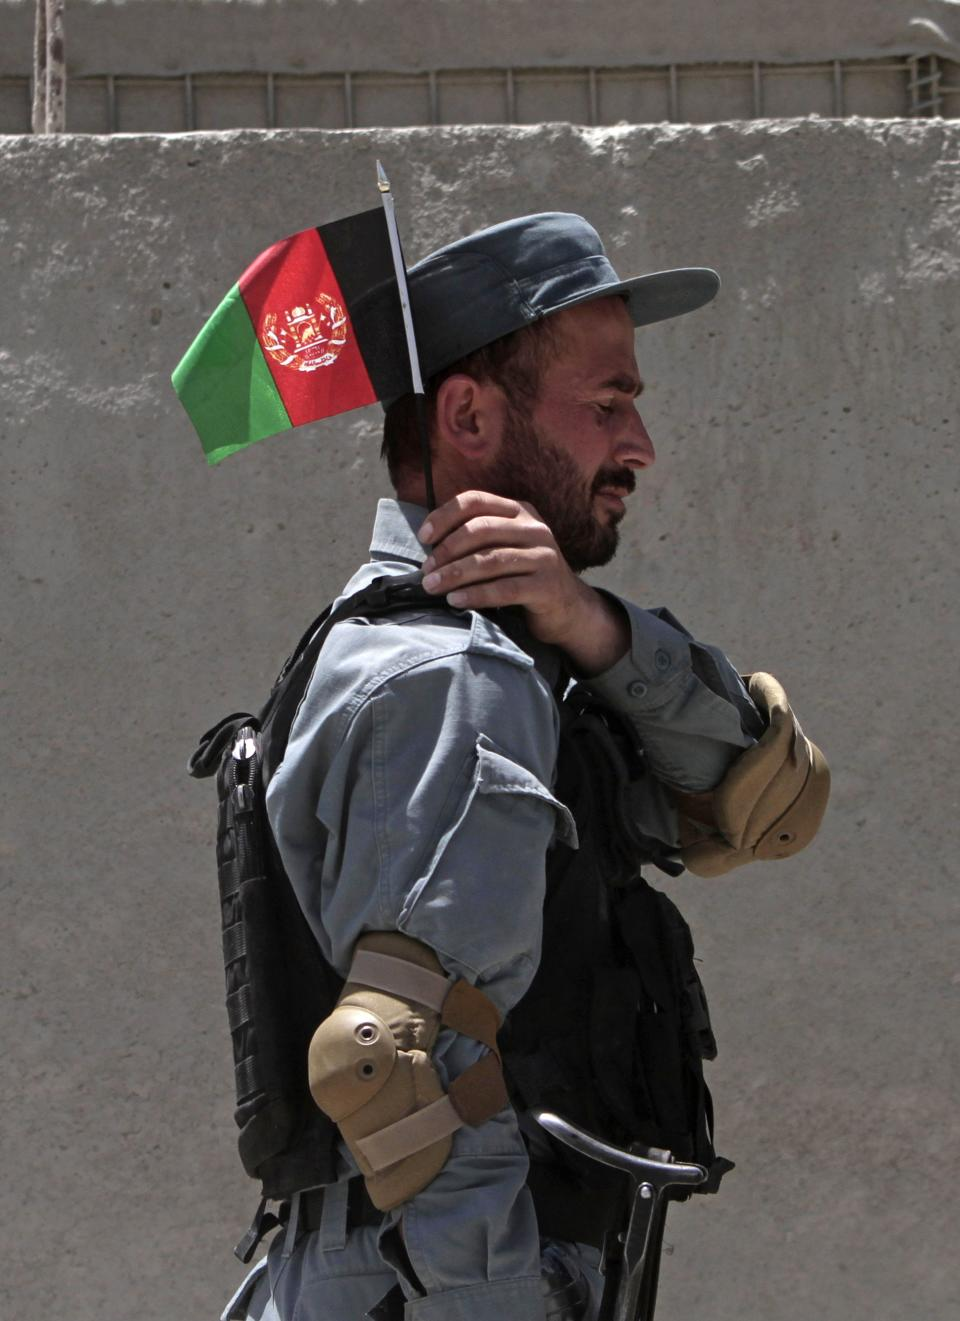 An Afghan policeman holds a small national flag during the fifth phase of a transfer of authority ceremony of the police academy from NATO-led troops to Afghan security forces in Kabul, Afghanistan, Saturday, June 22, 2013. (AP Photo/Rahmat Gul)